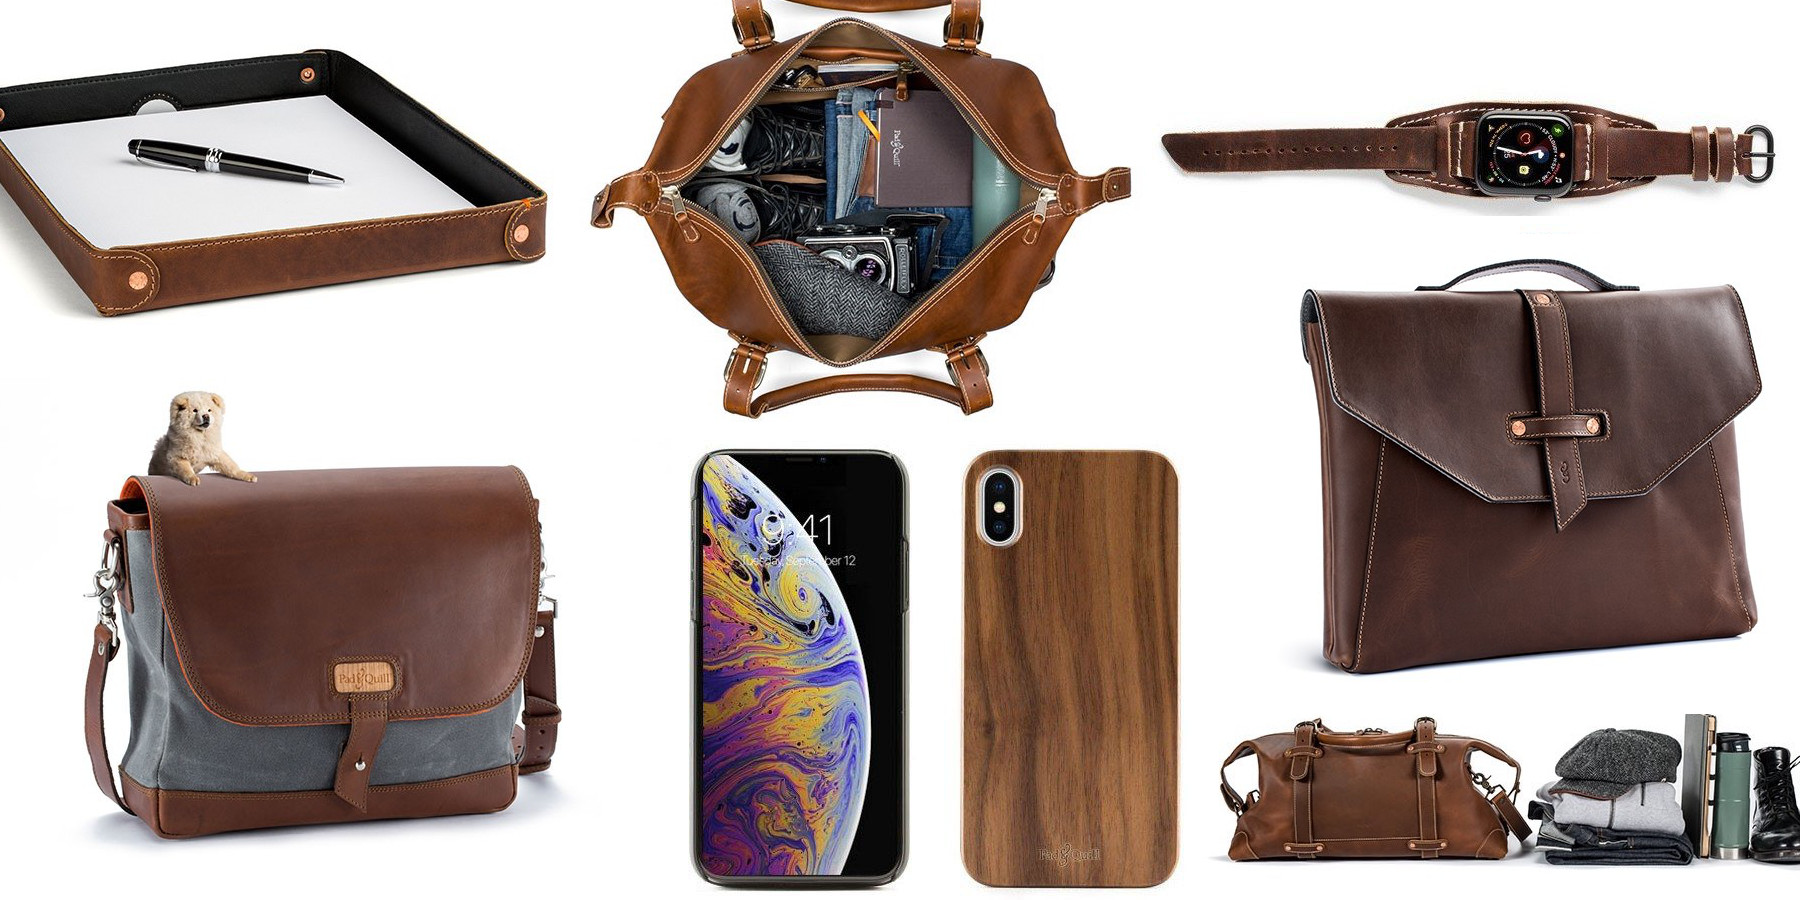 Pad & Quill offers up to $145 off MacBook bags, Apple Watch bands, desk accessories, more